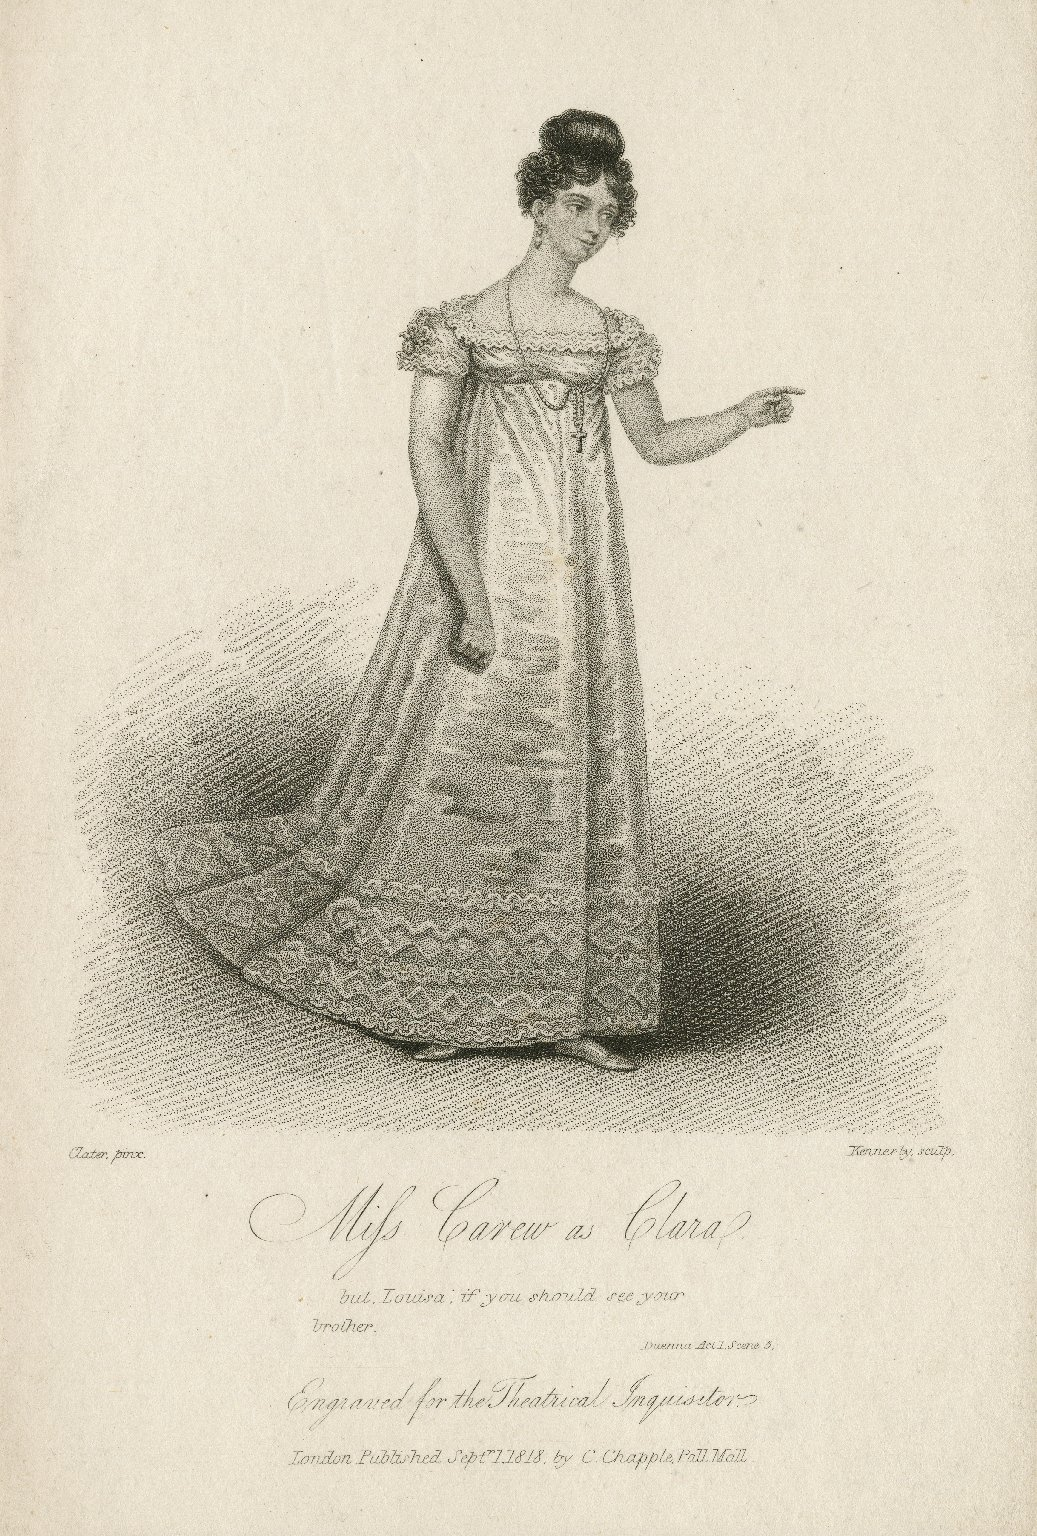 Miss Carew as Clara ... [in Sheridan's Duenna] [graphic] / Clater, pinx. ; Kennerly, sculp.